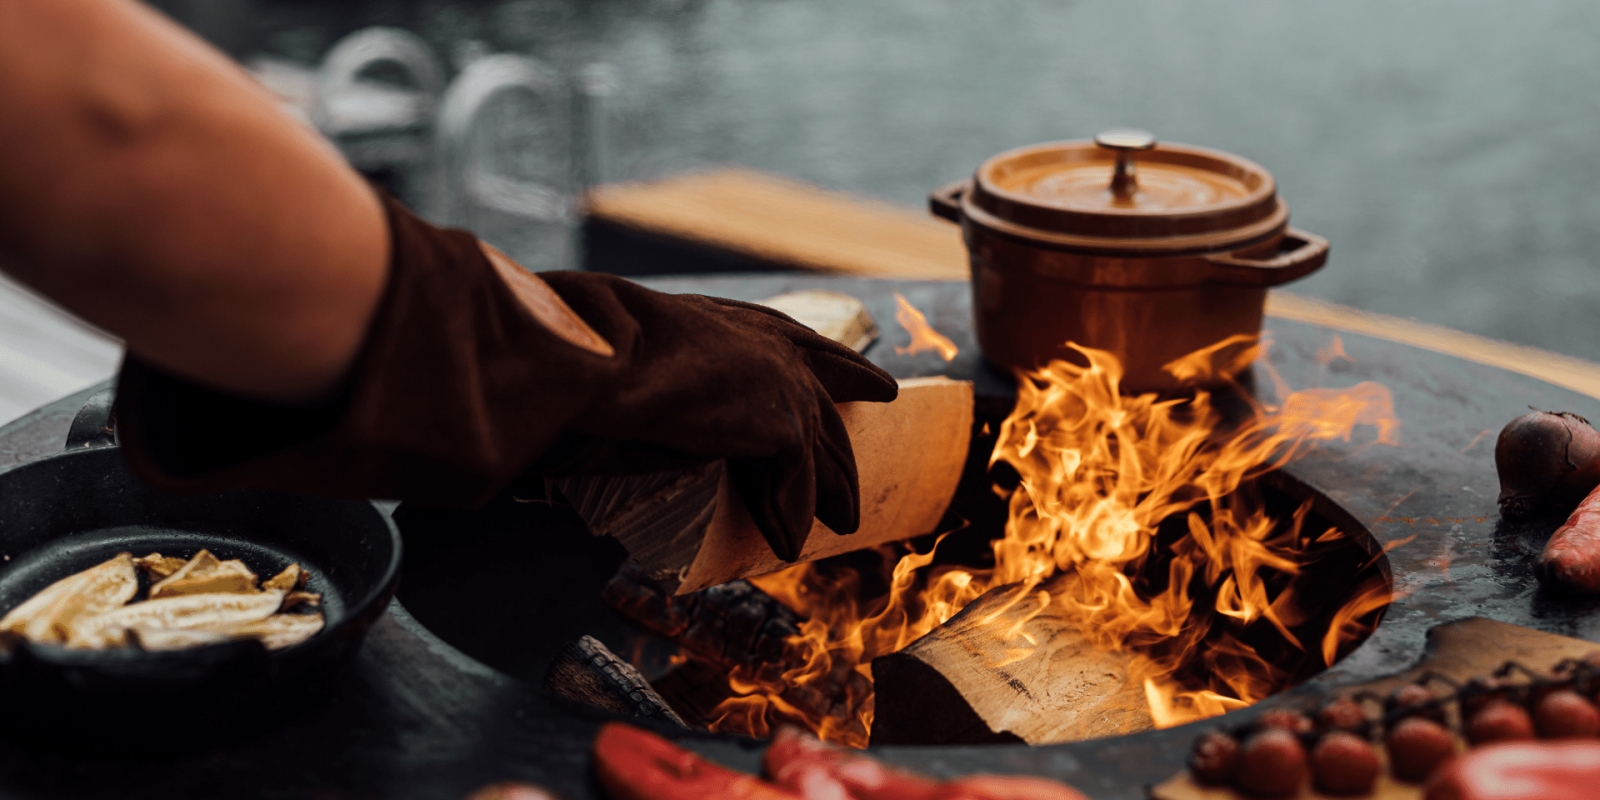 Outdoor cooking is more than grilling